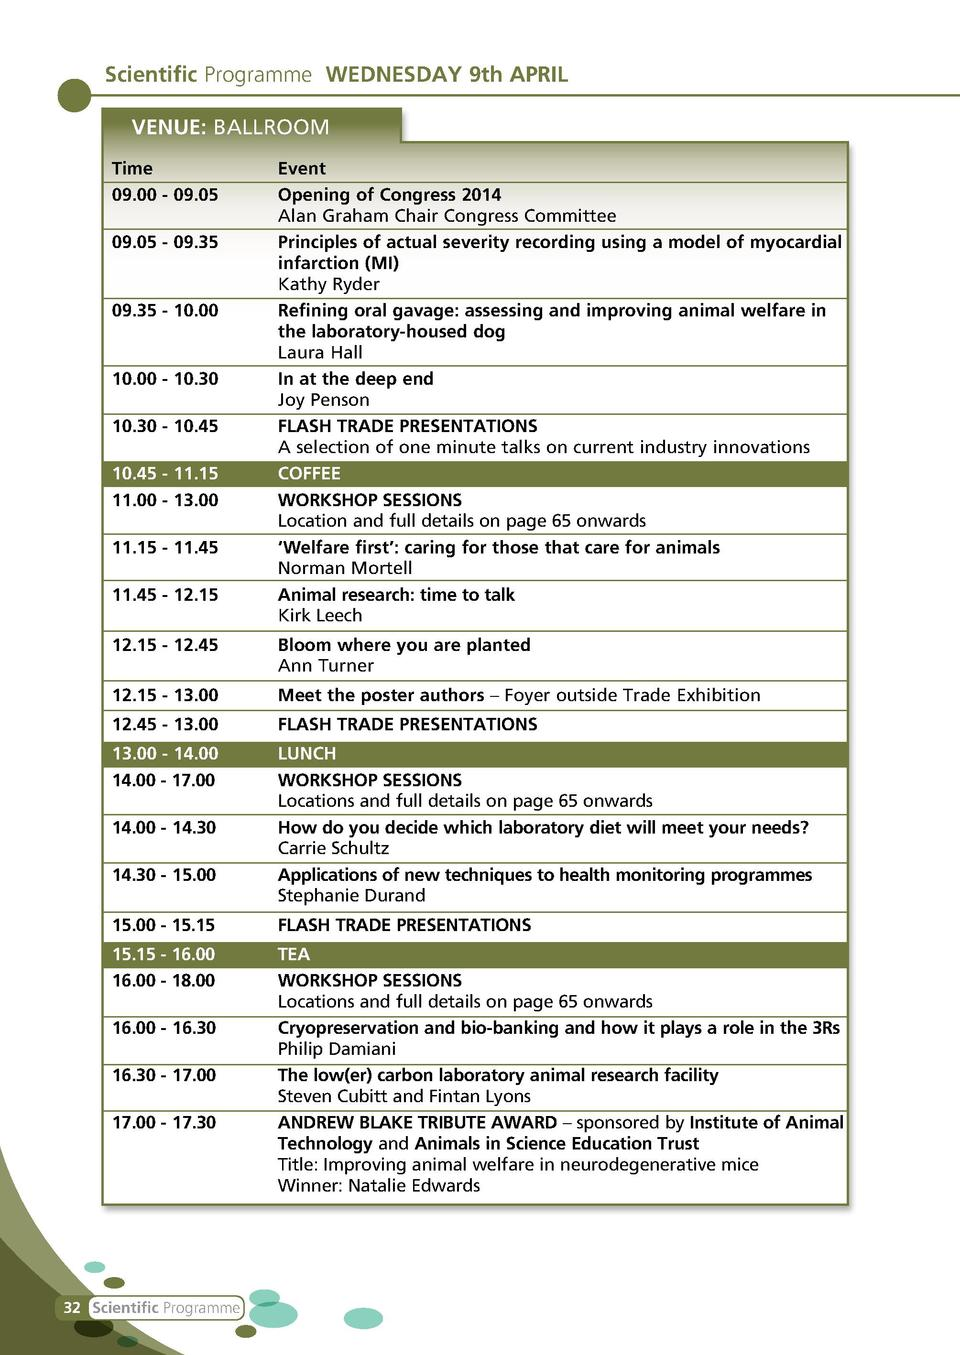 Scientific Programme WEDNESDAY 9th APRIL VENUE  BALLROOM Time Event 09.00 - 09.05  Opening of Congress 2014   Alan Graham ...